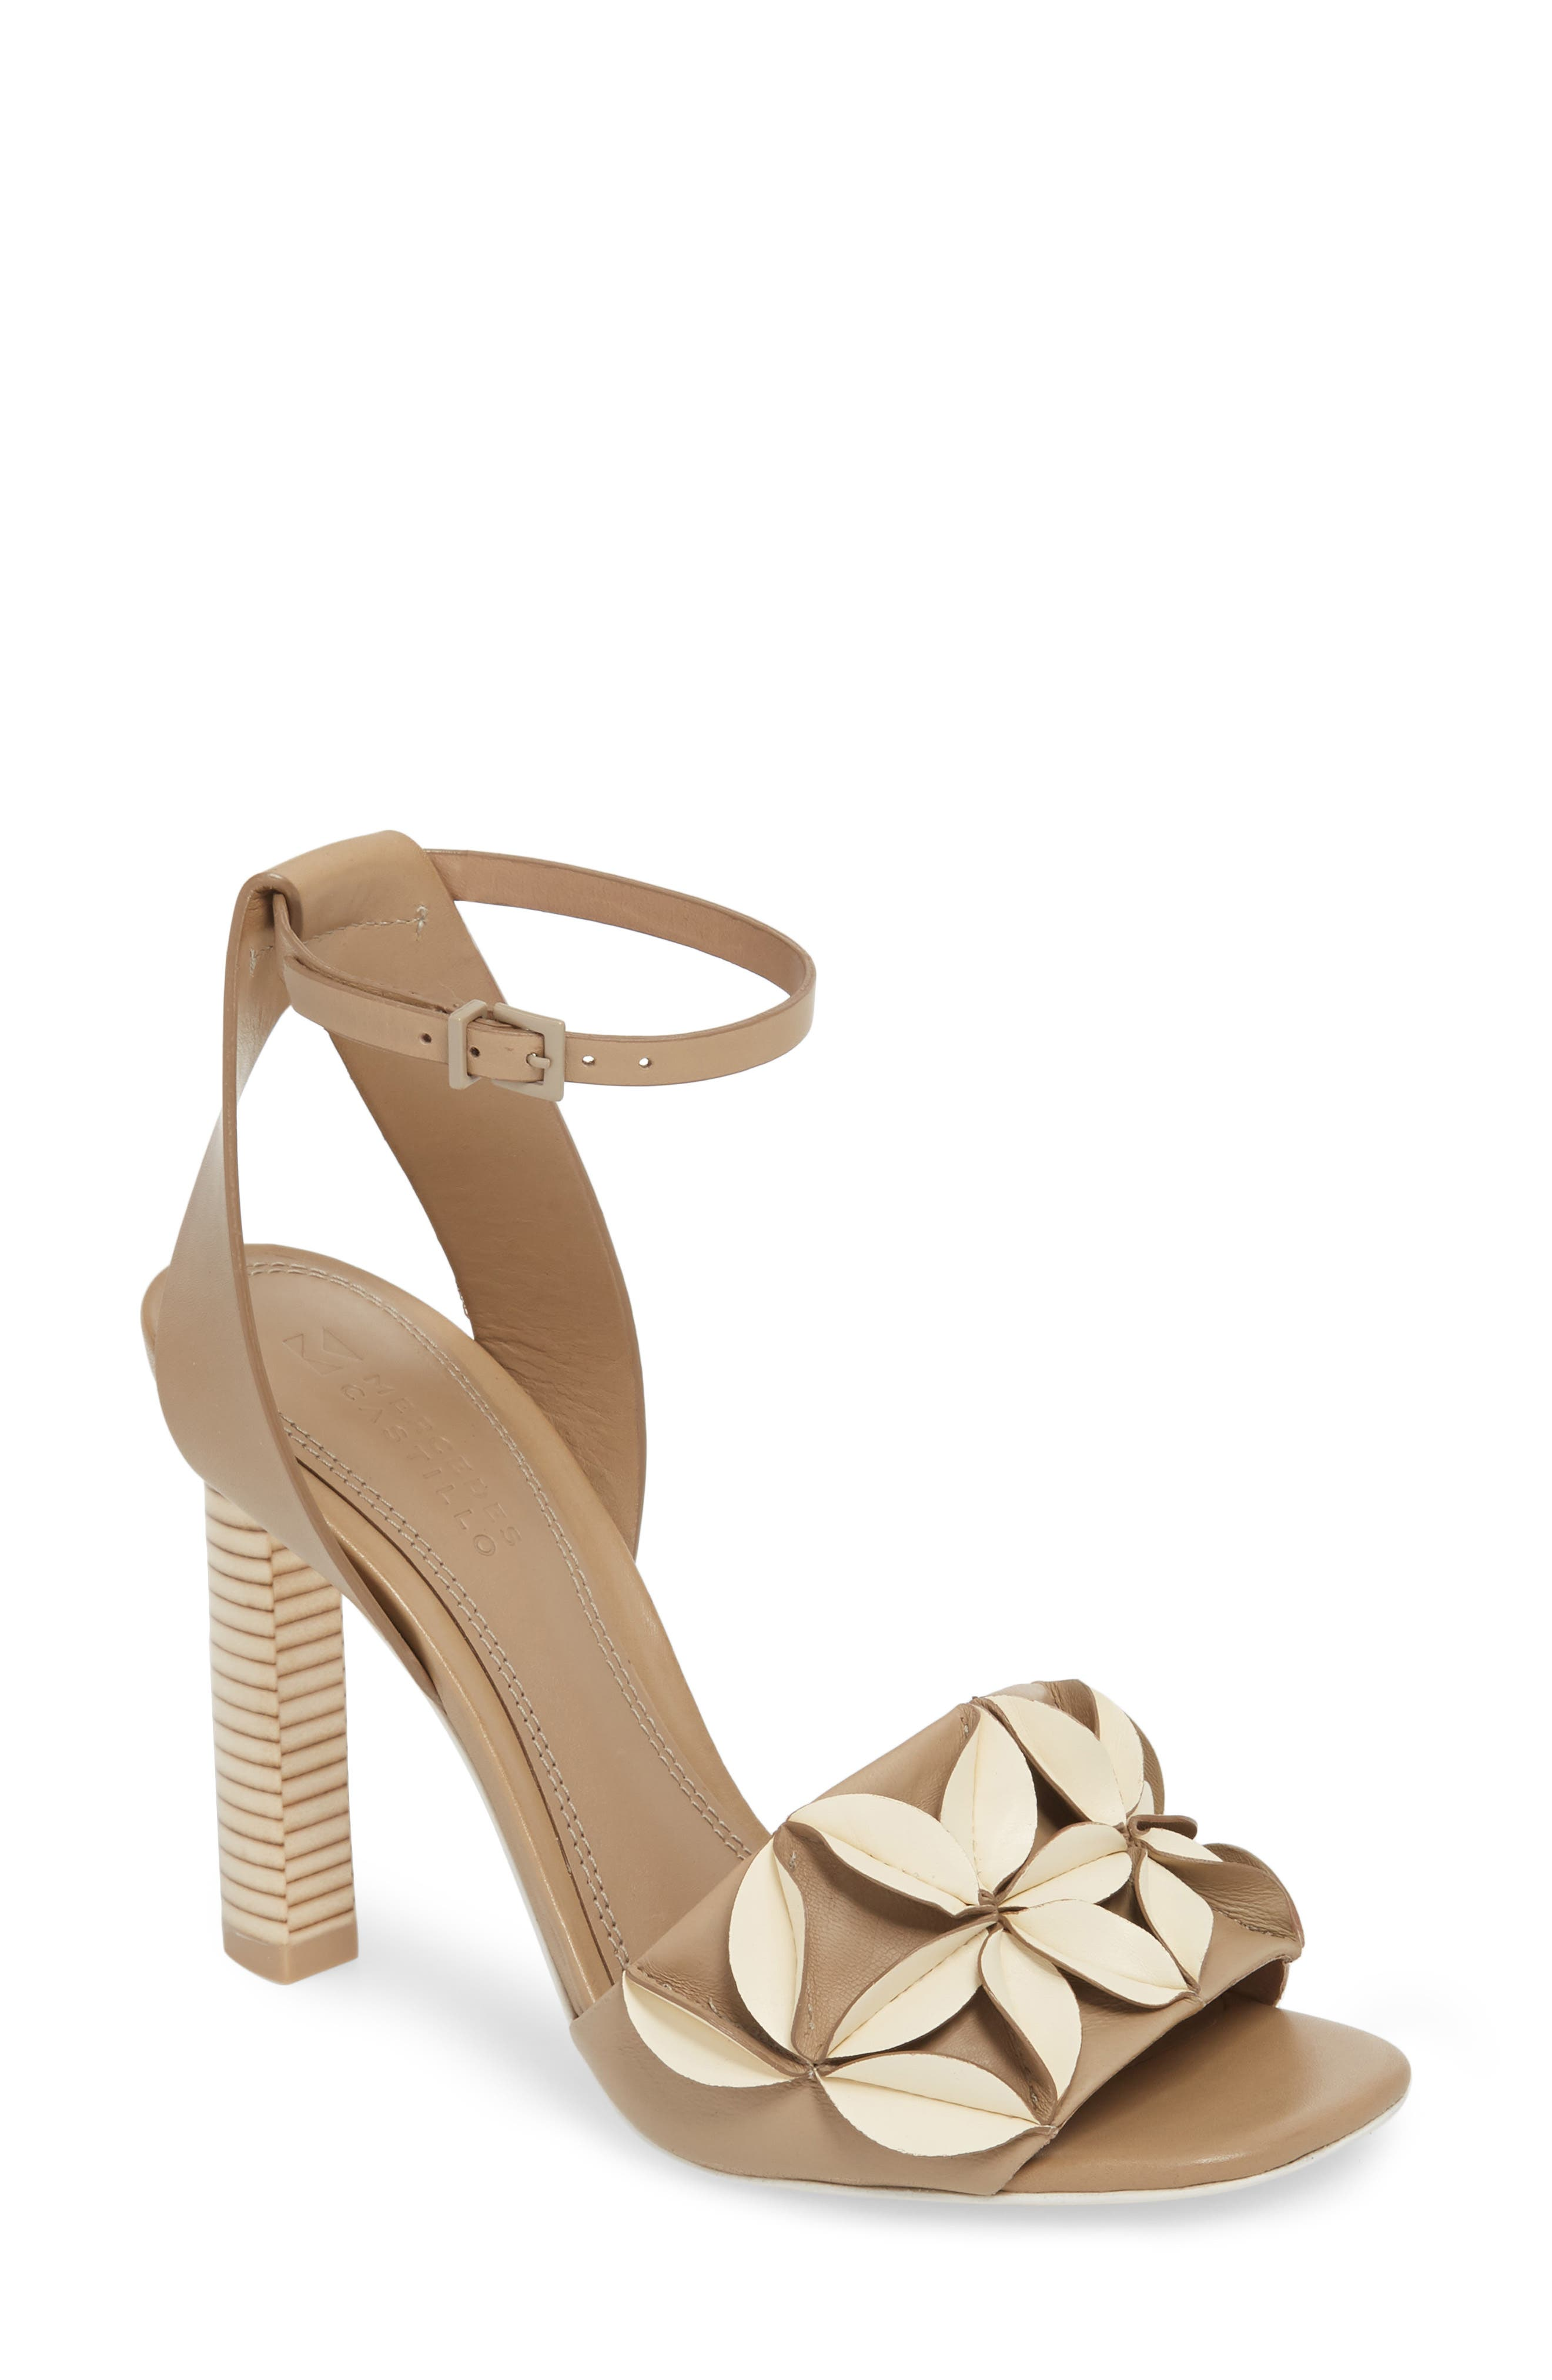 Milee Ankle Strap Sandal,                             Main thumbnail 1, color,